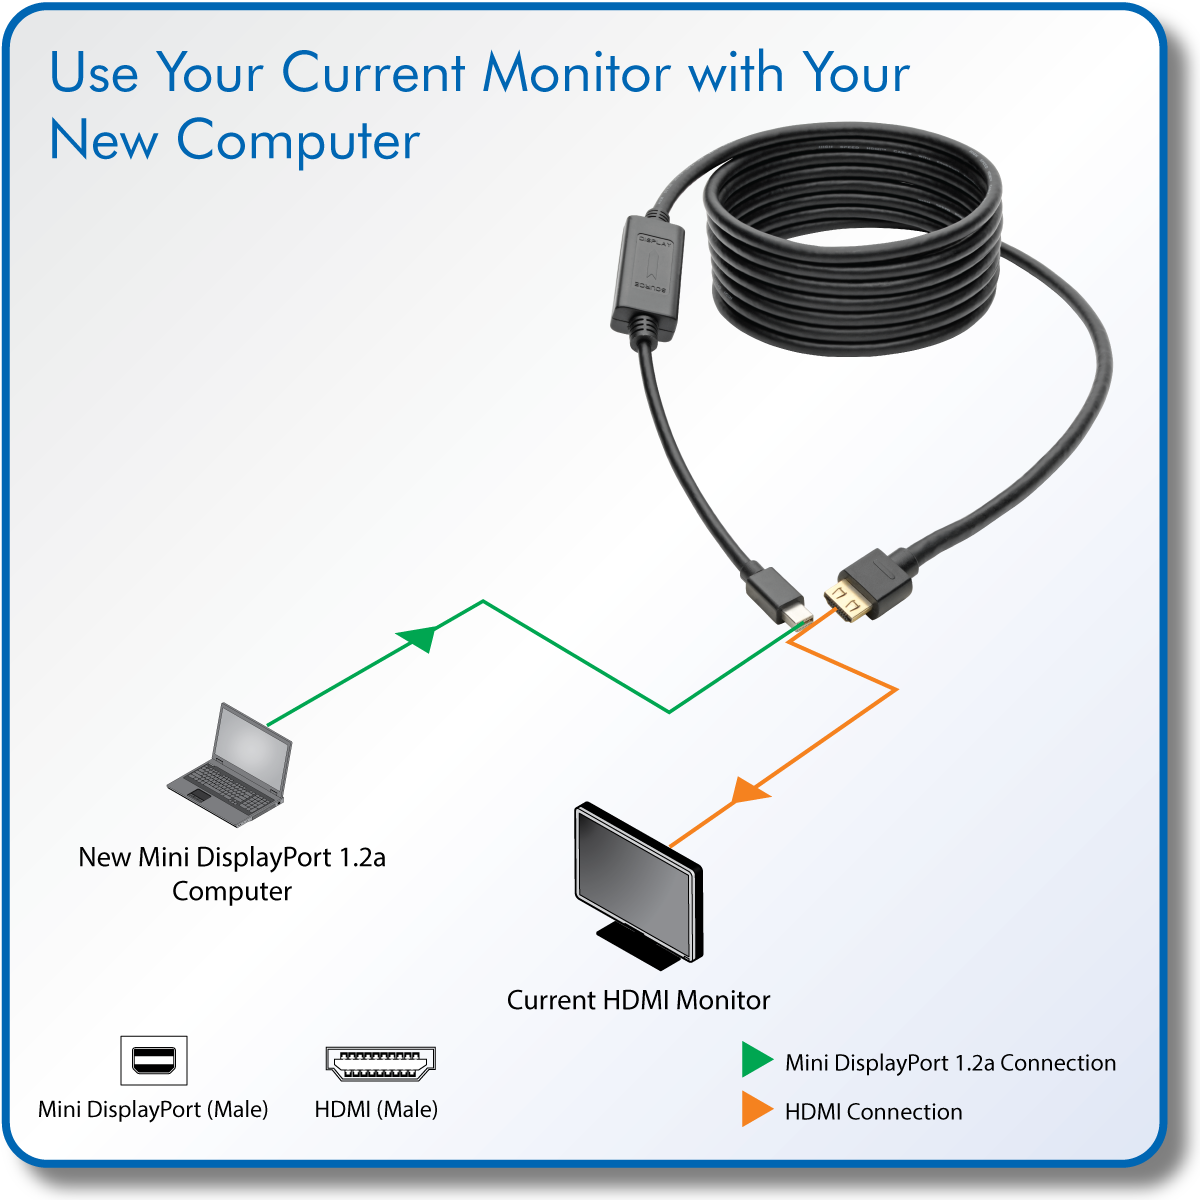 Tripp Lite Mini Displayport 12a To Hdmi 20 Active Adapter Cable 4k Connection Diagram Directly Connect An Monitor A Computer